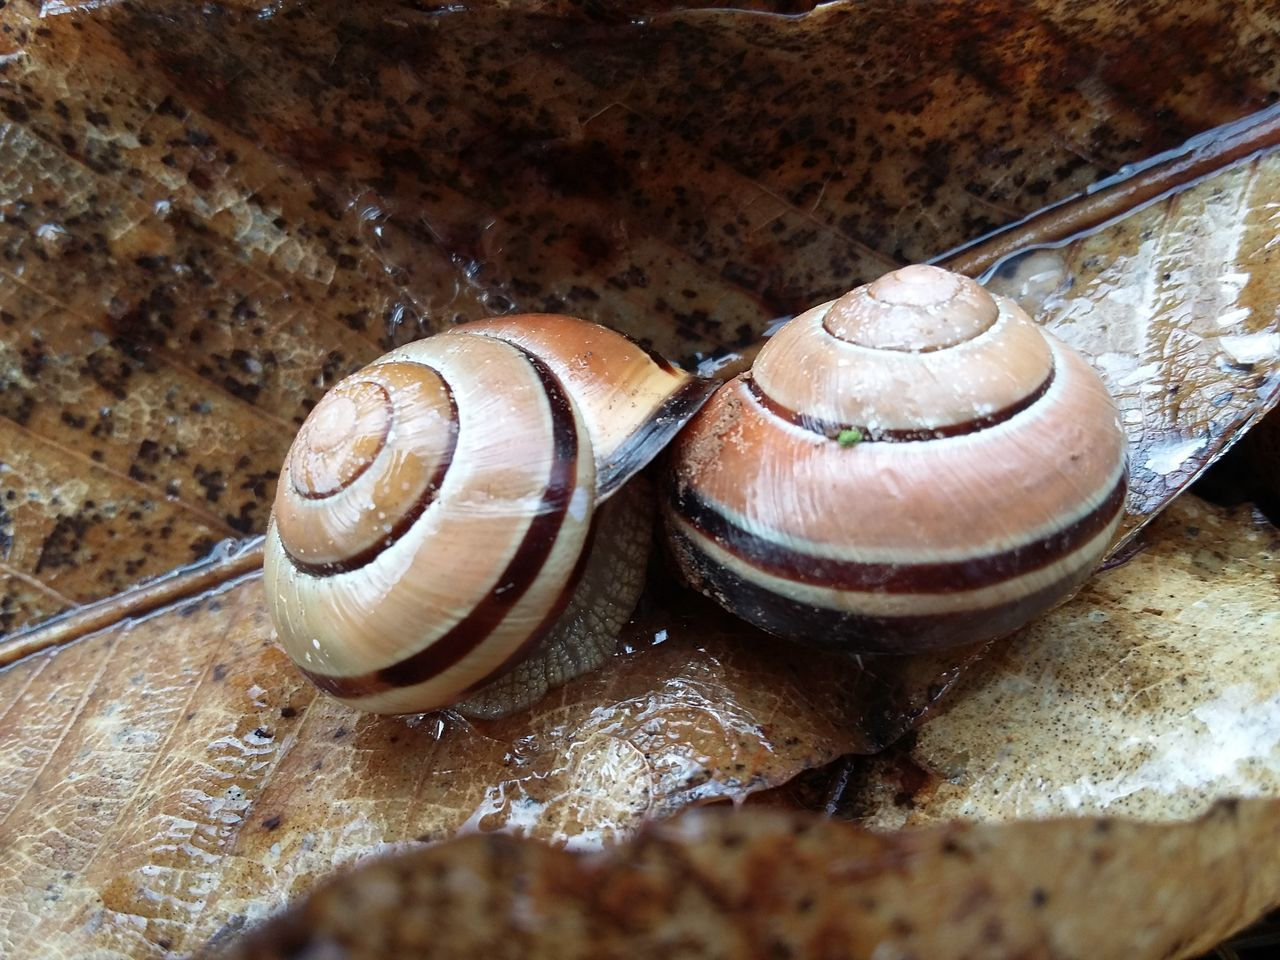 It's Raining And They Like It Animal Themes Snailslove Close-up Outdoors Day Leaves 🍁 Climbing in Weisenheim,Deutschland